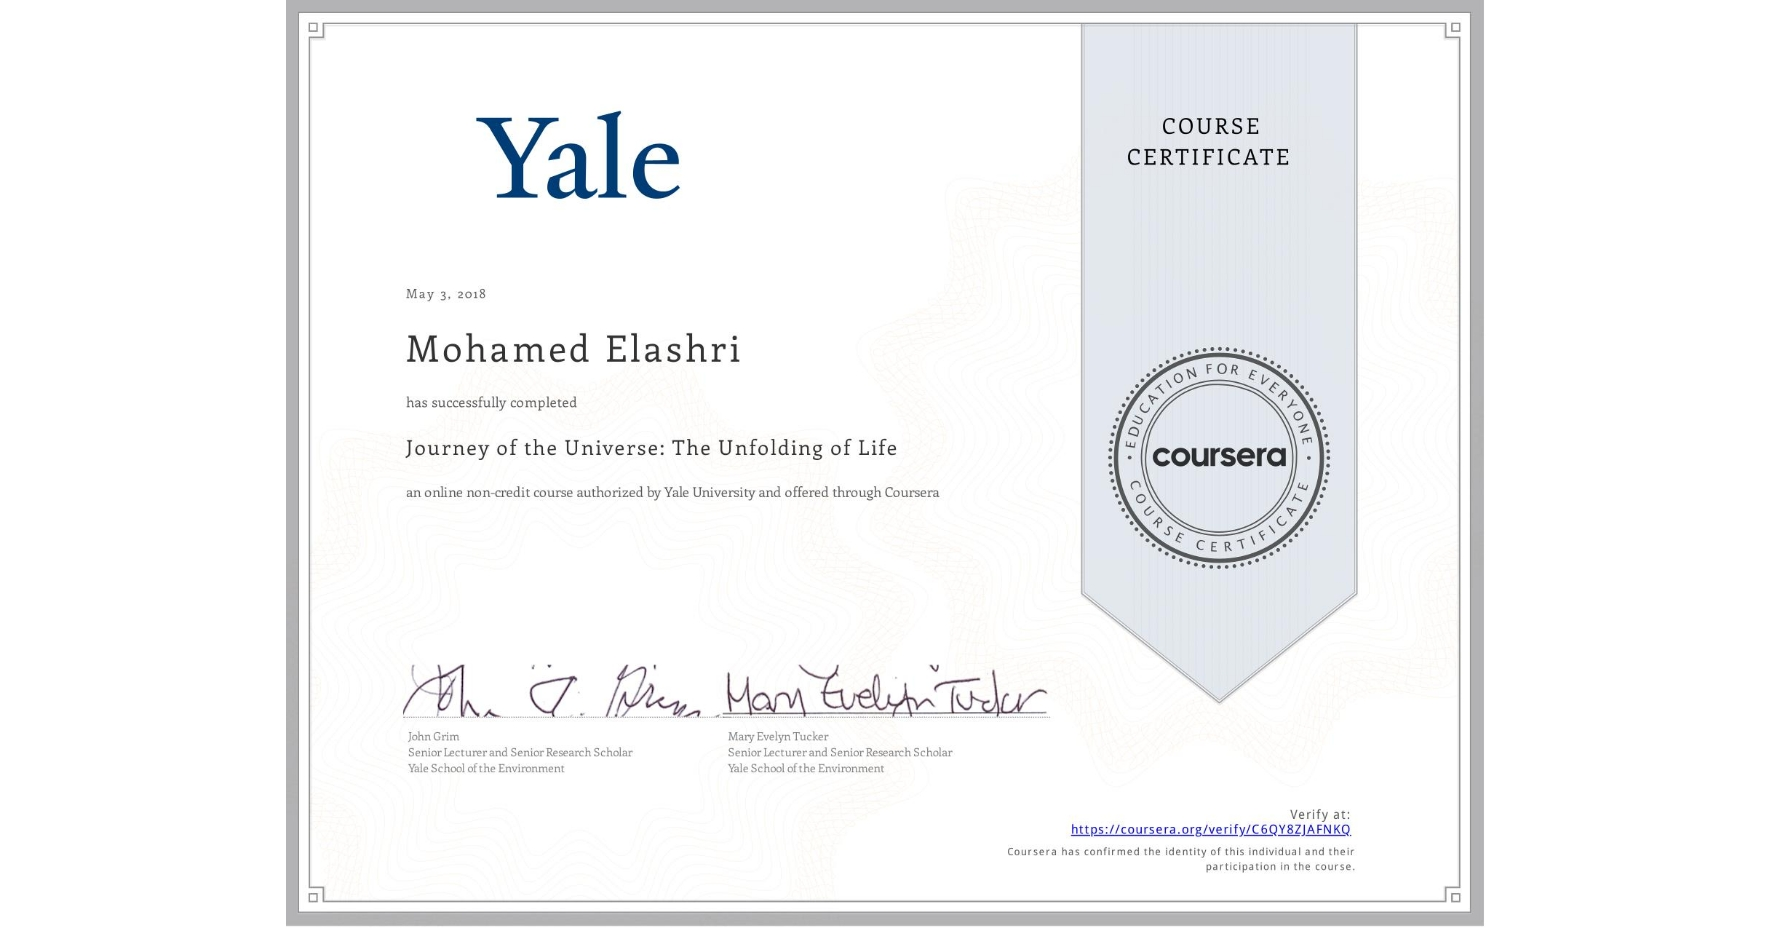 View certificate for Mohamed Elashri, Journey of the Universe: The Unfolding of Life, an online non-credit course authorized by Yale University and offered through Coursera